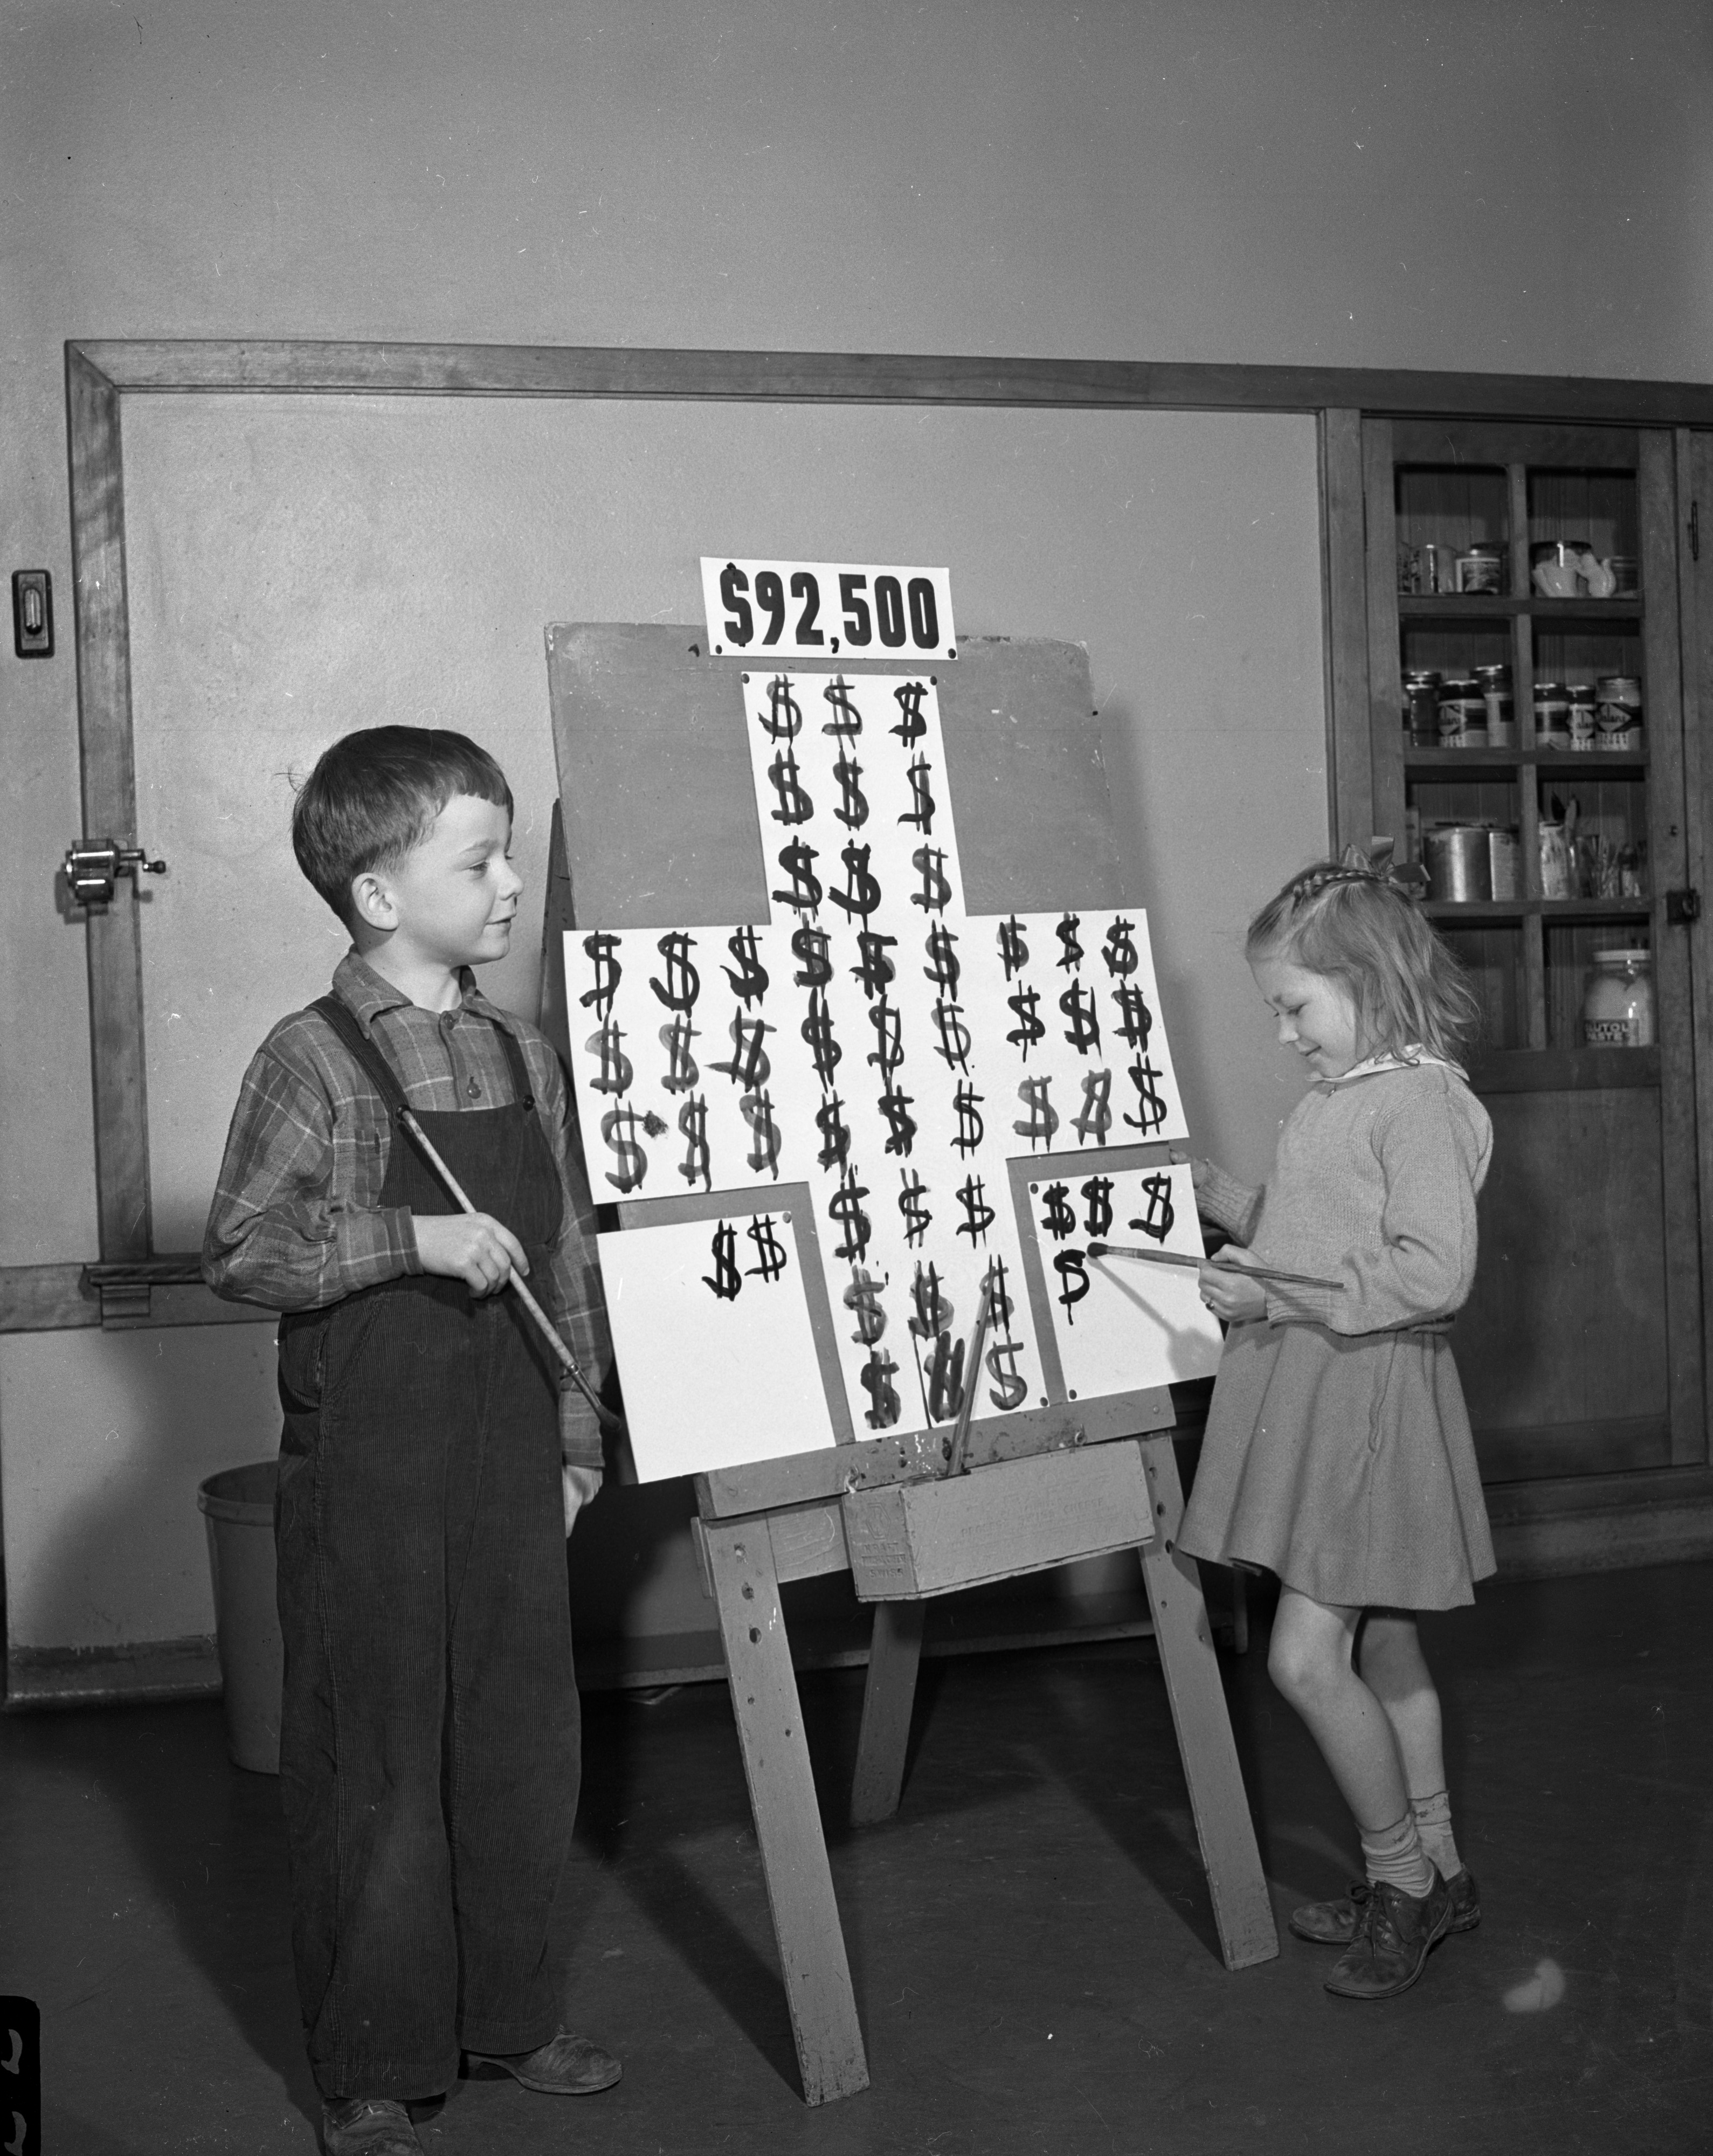 Campbell Smith (representing Ann Arbor) and Saundra Wares (representing the county outside Ann Arbor) Show the Red Cross Drive's Daily Score, March 30, 1944 image